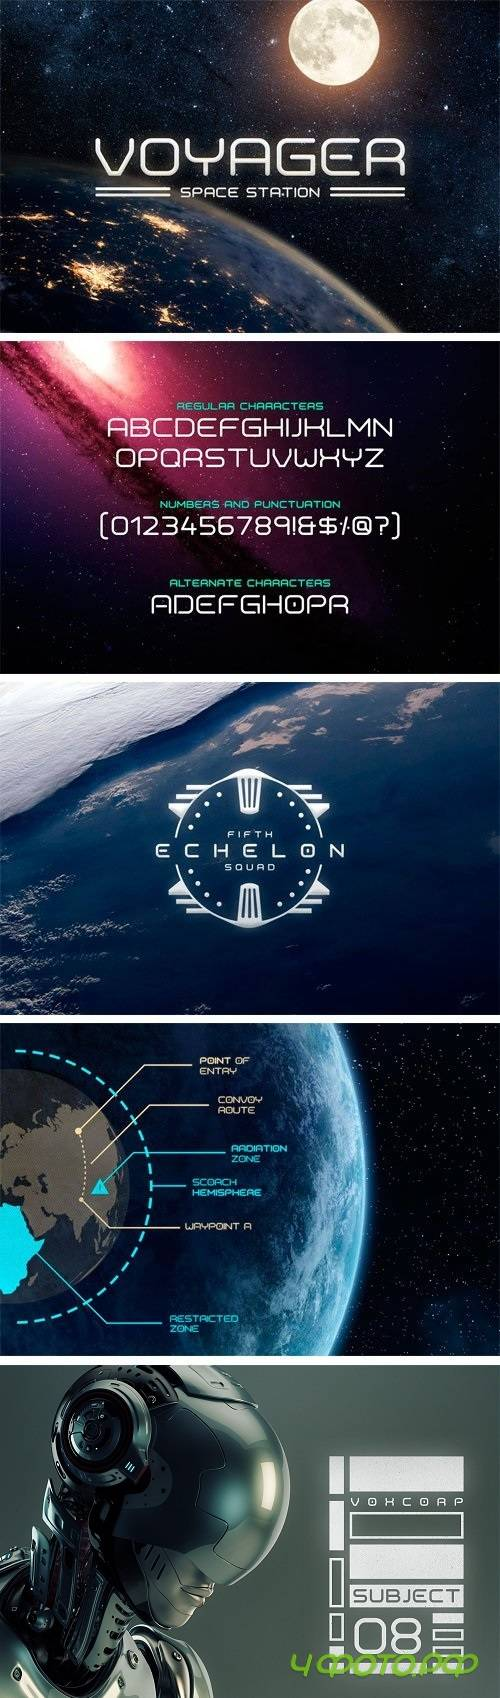 Voyager Typeface - 1435983